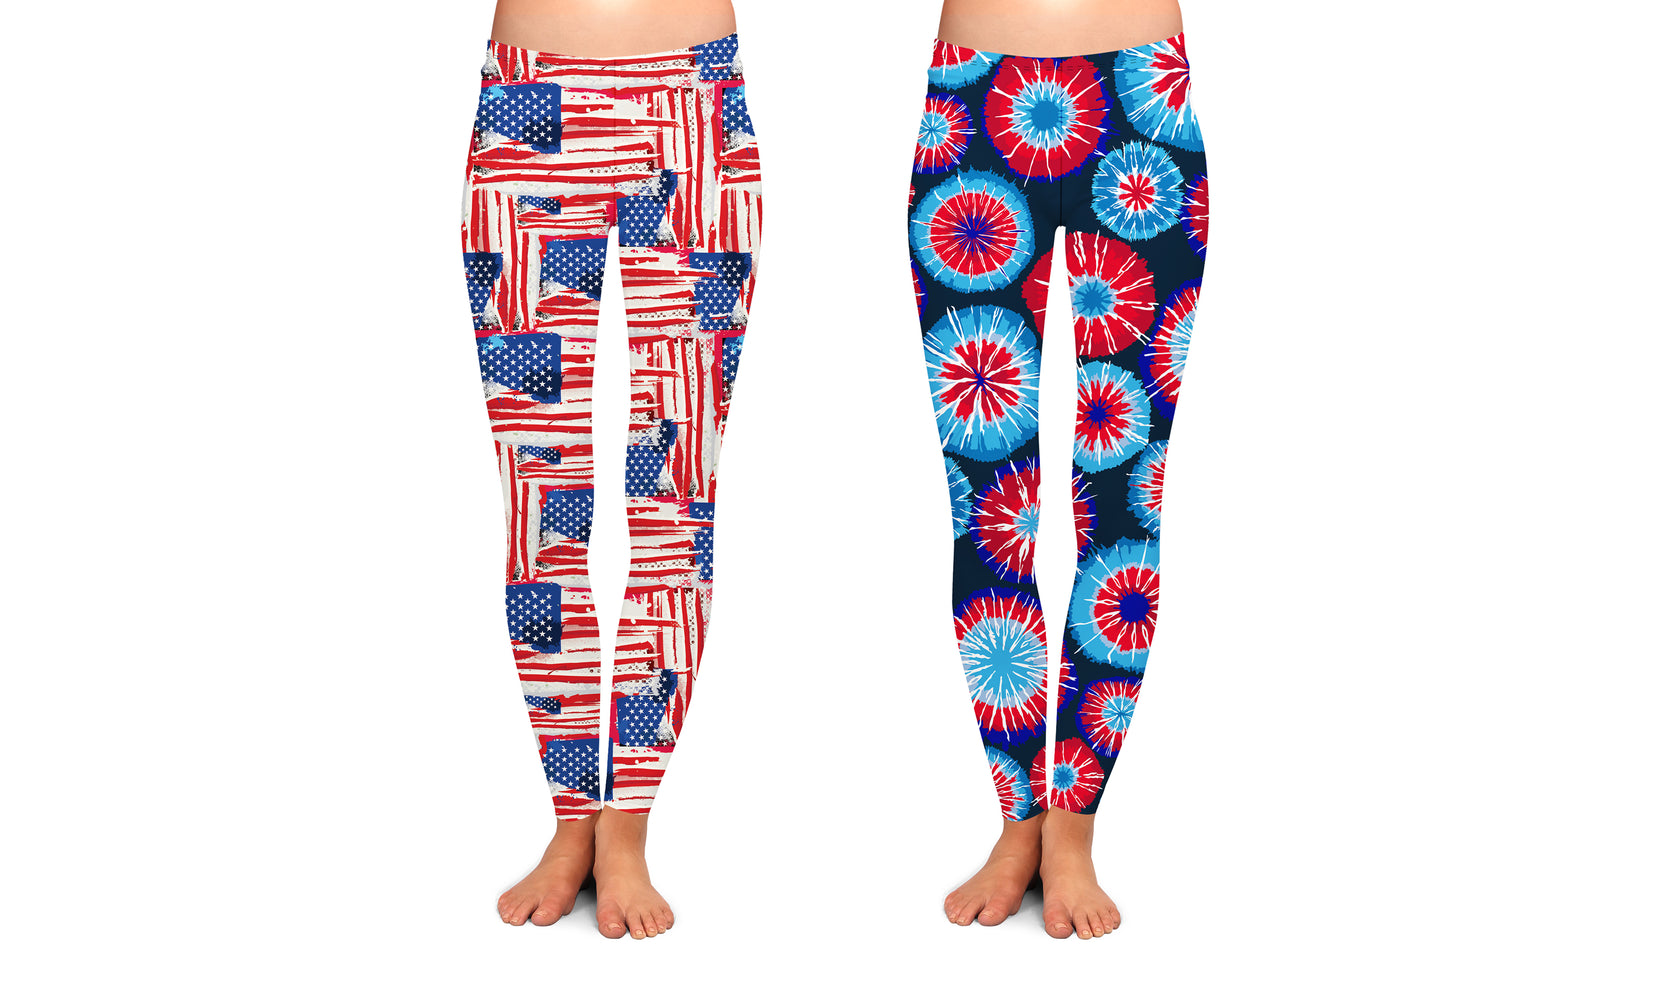 2-Pack: Women's Ultra Soft Red,White and Blue Patterned Leggings